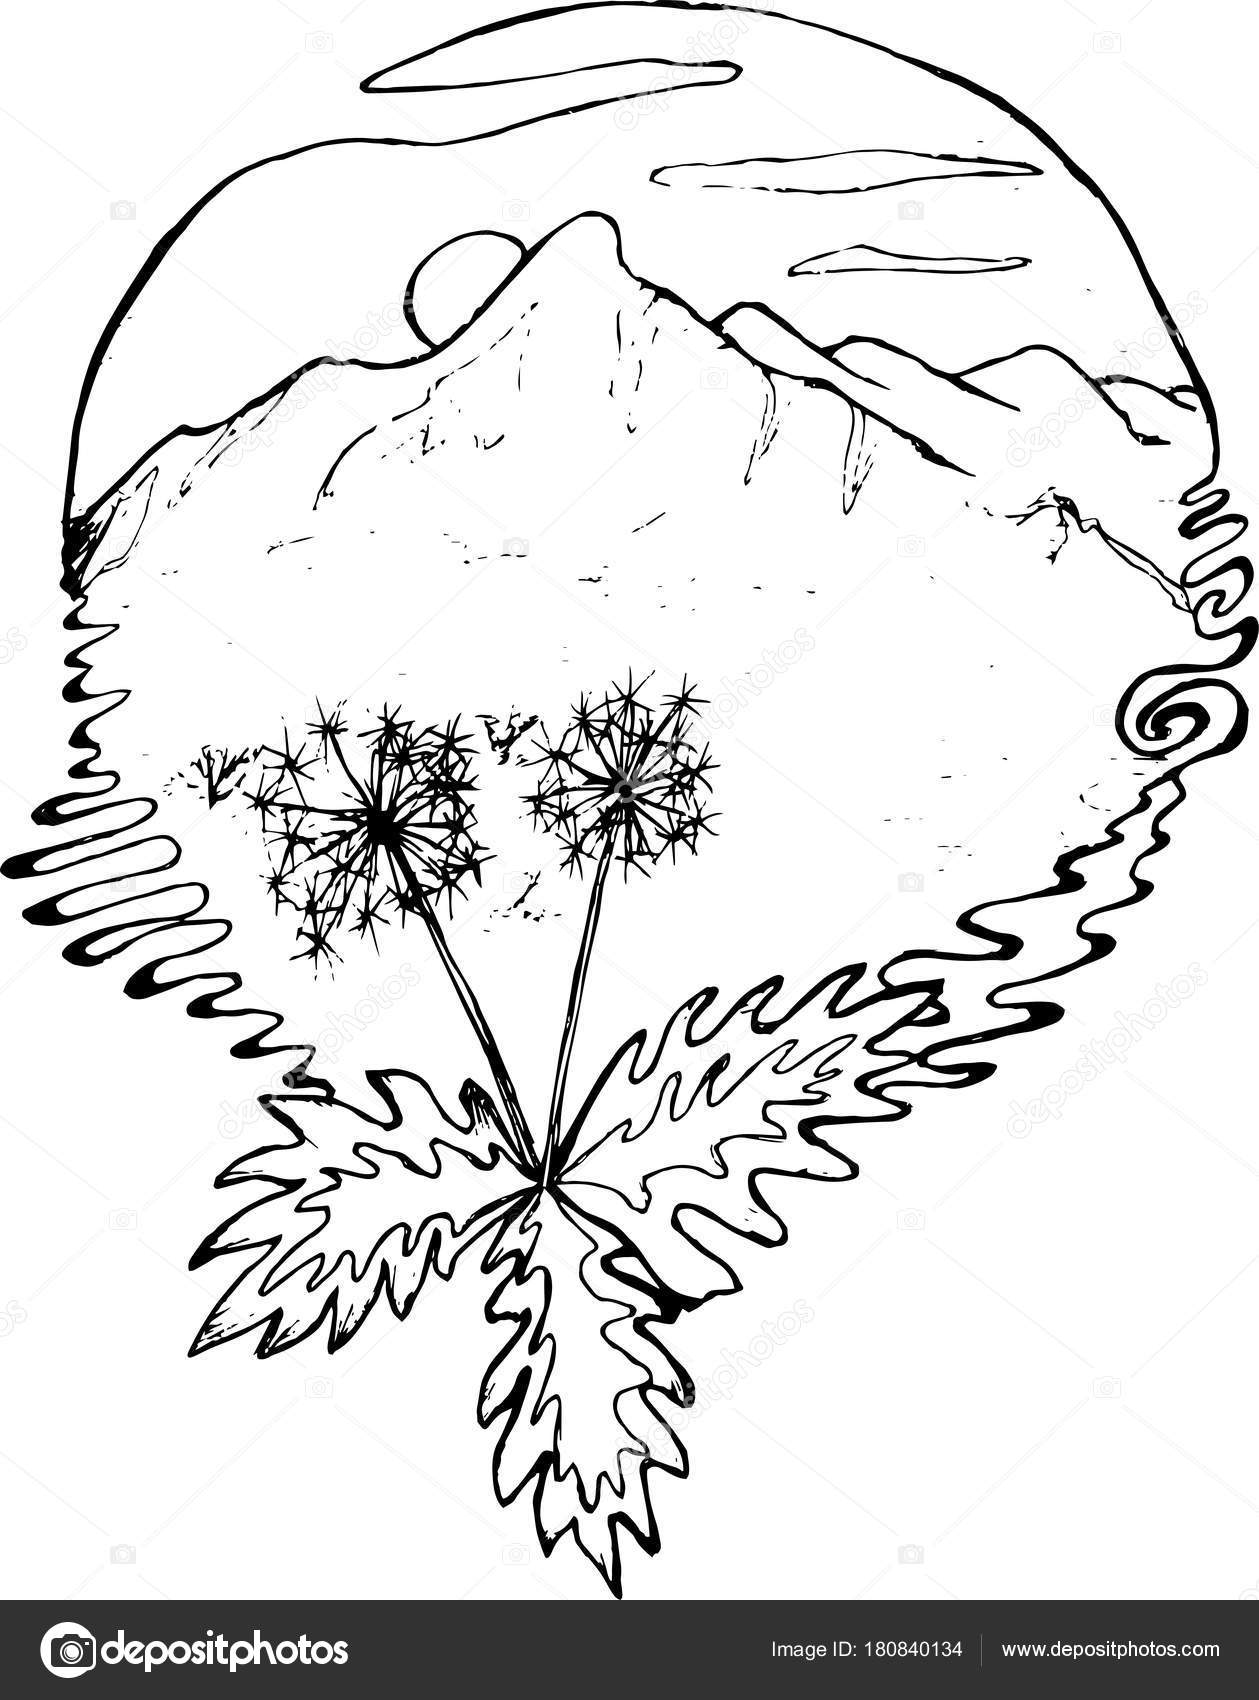 1259x1700 Black And White Drawing Of Mountains, Sun, Clouds, Dandelions